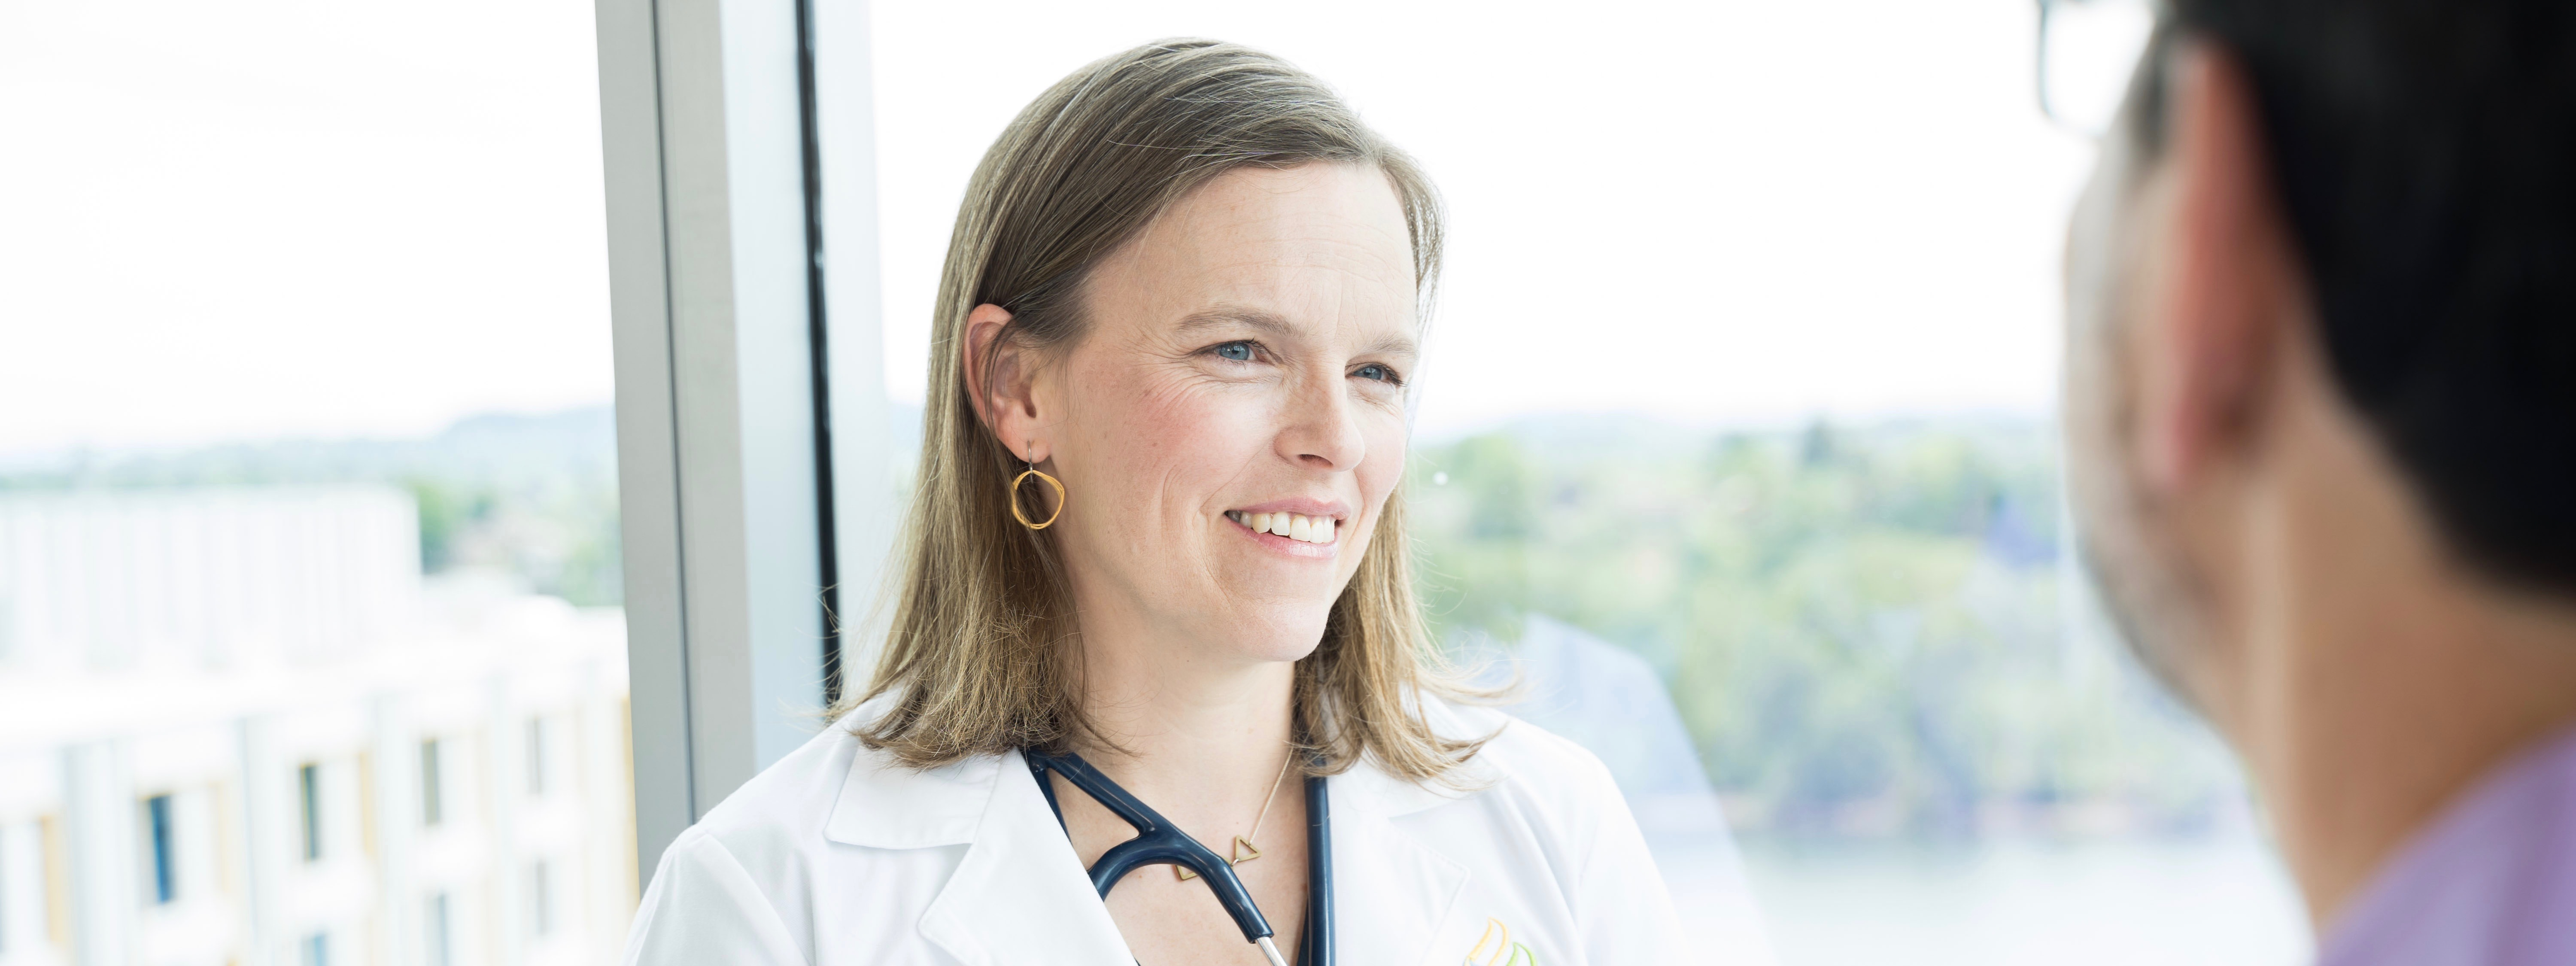 Dr. Rachel Cook has advanced training in blood cancers and blood disorders. Her focus areas include treating myelodysplastic syndromes.